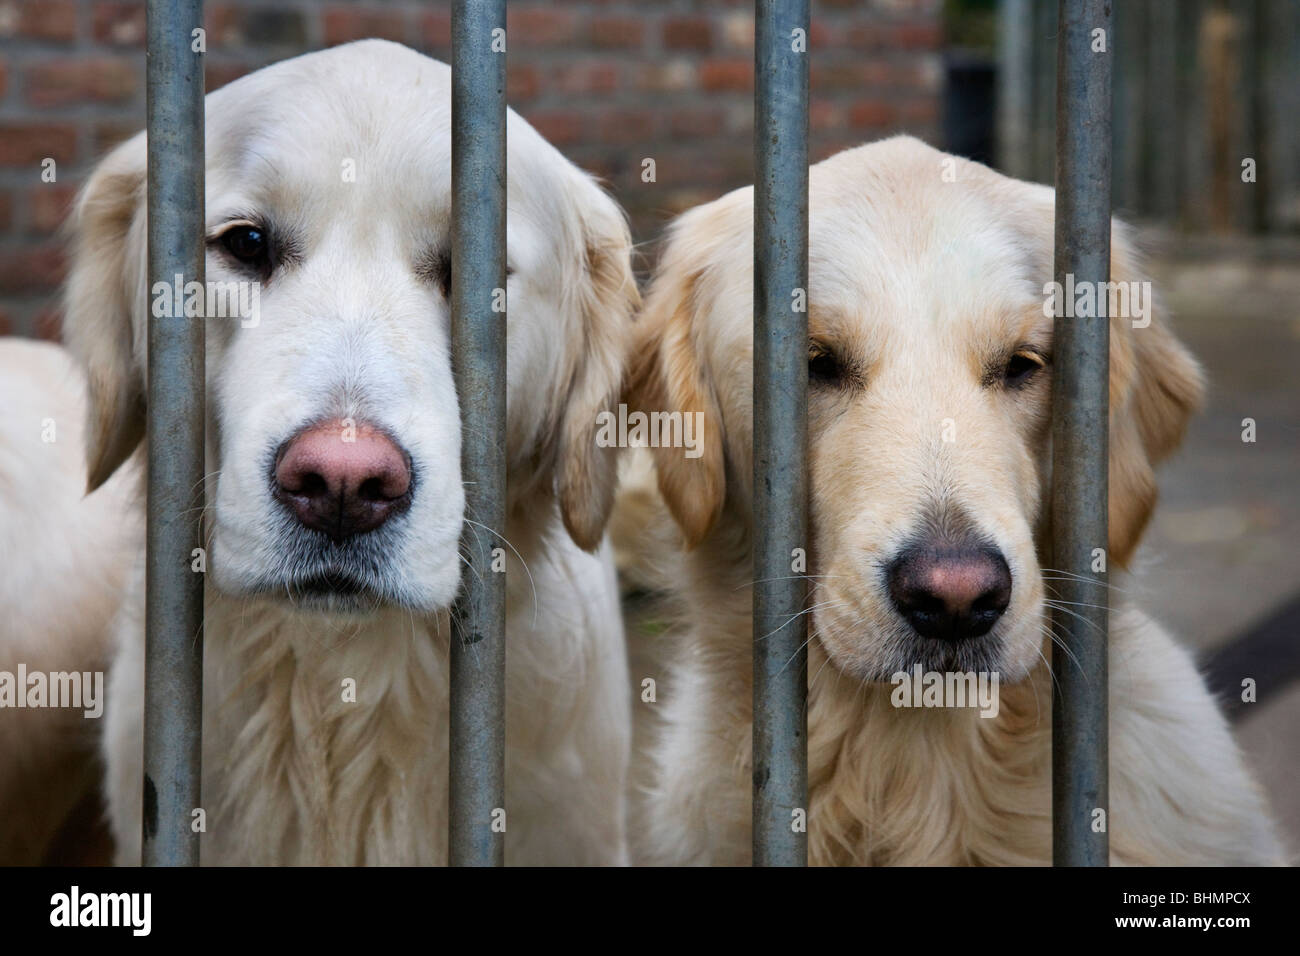 Two Golden Retrievers (Canis lupus familiaris) behind bars in cage - Stock Image